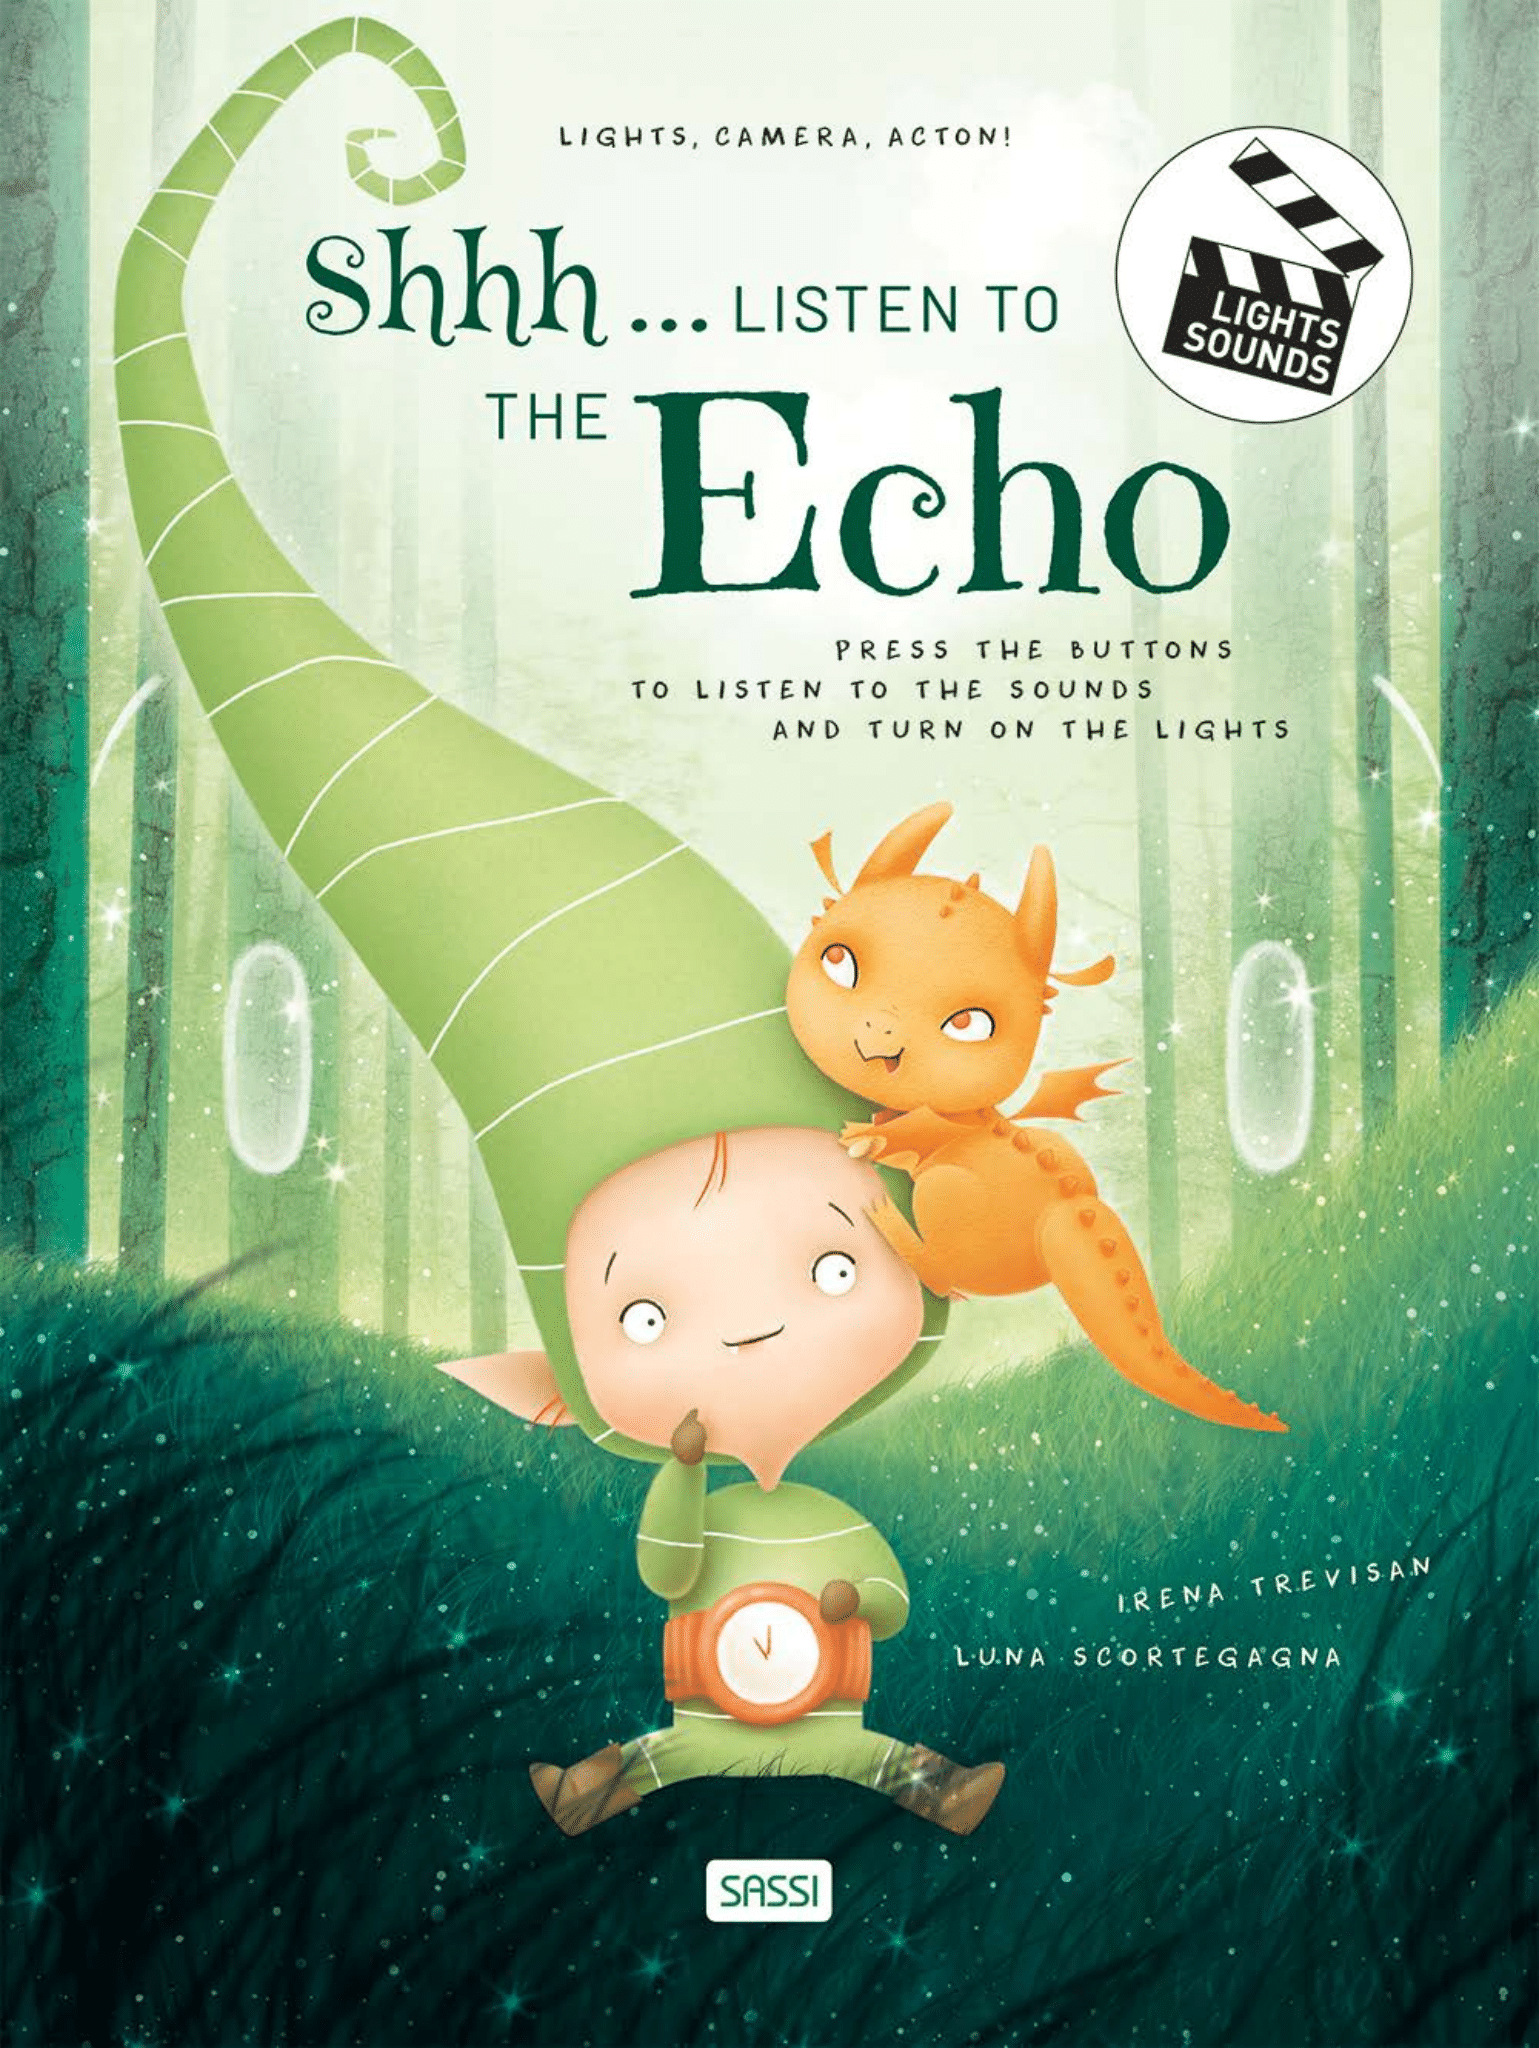 Sounds & Light - Shh..... Listen to the Echo